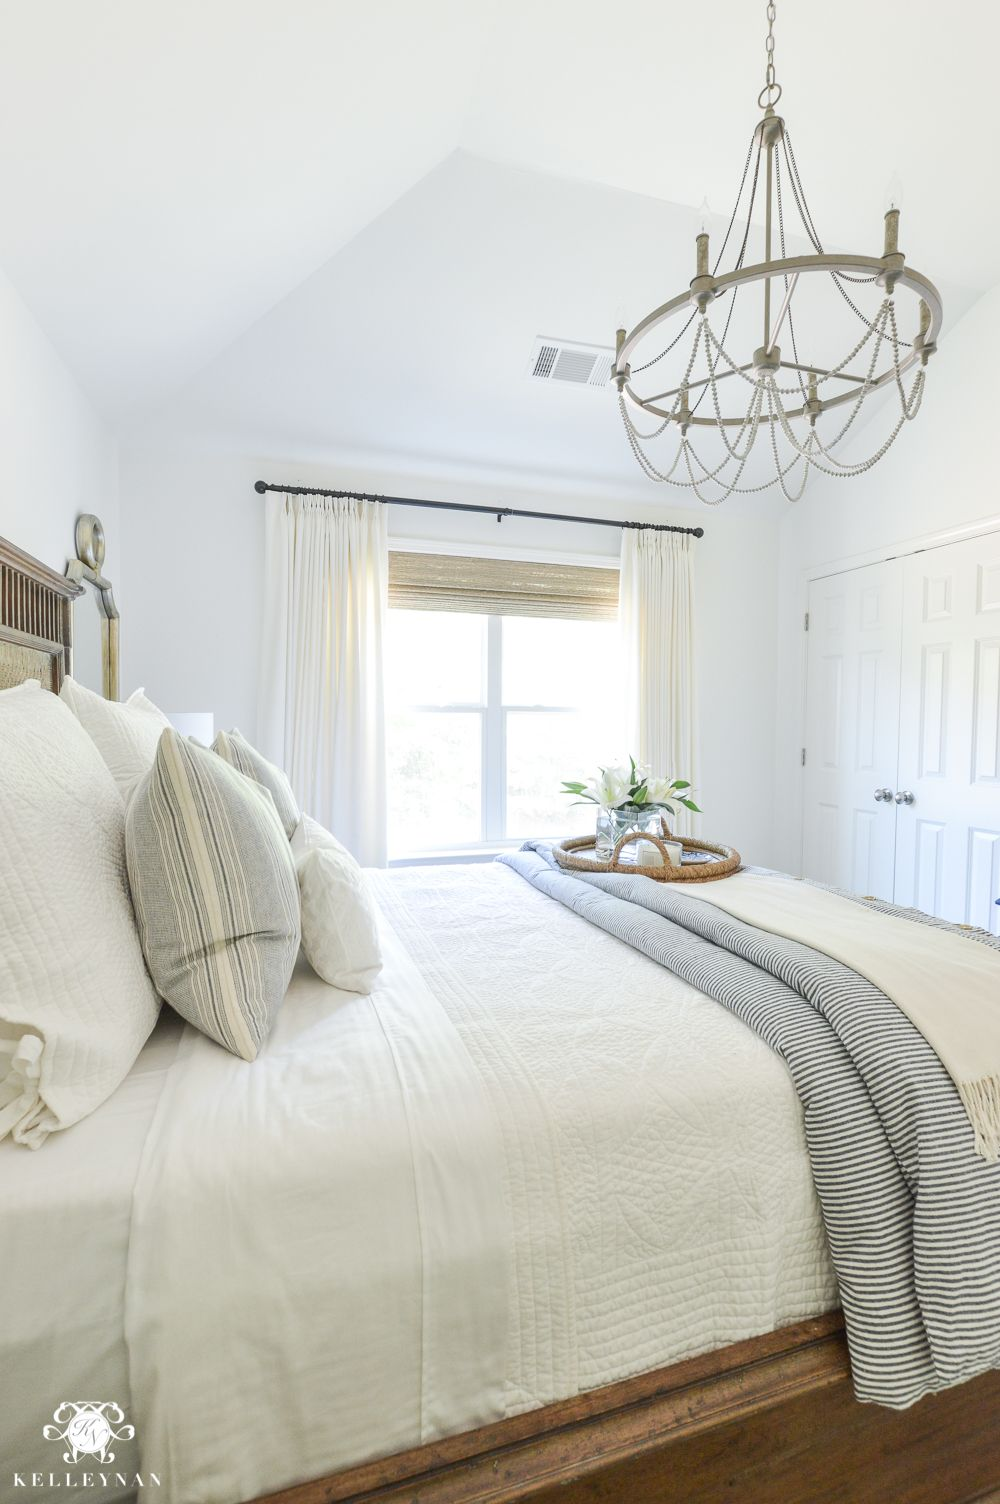 Room Makeover And A Box Bed: One Room Challenge Blue And White Guest Bedroom Reveal